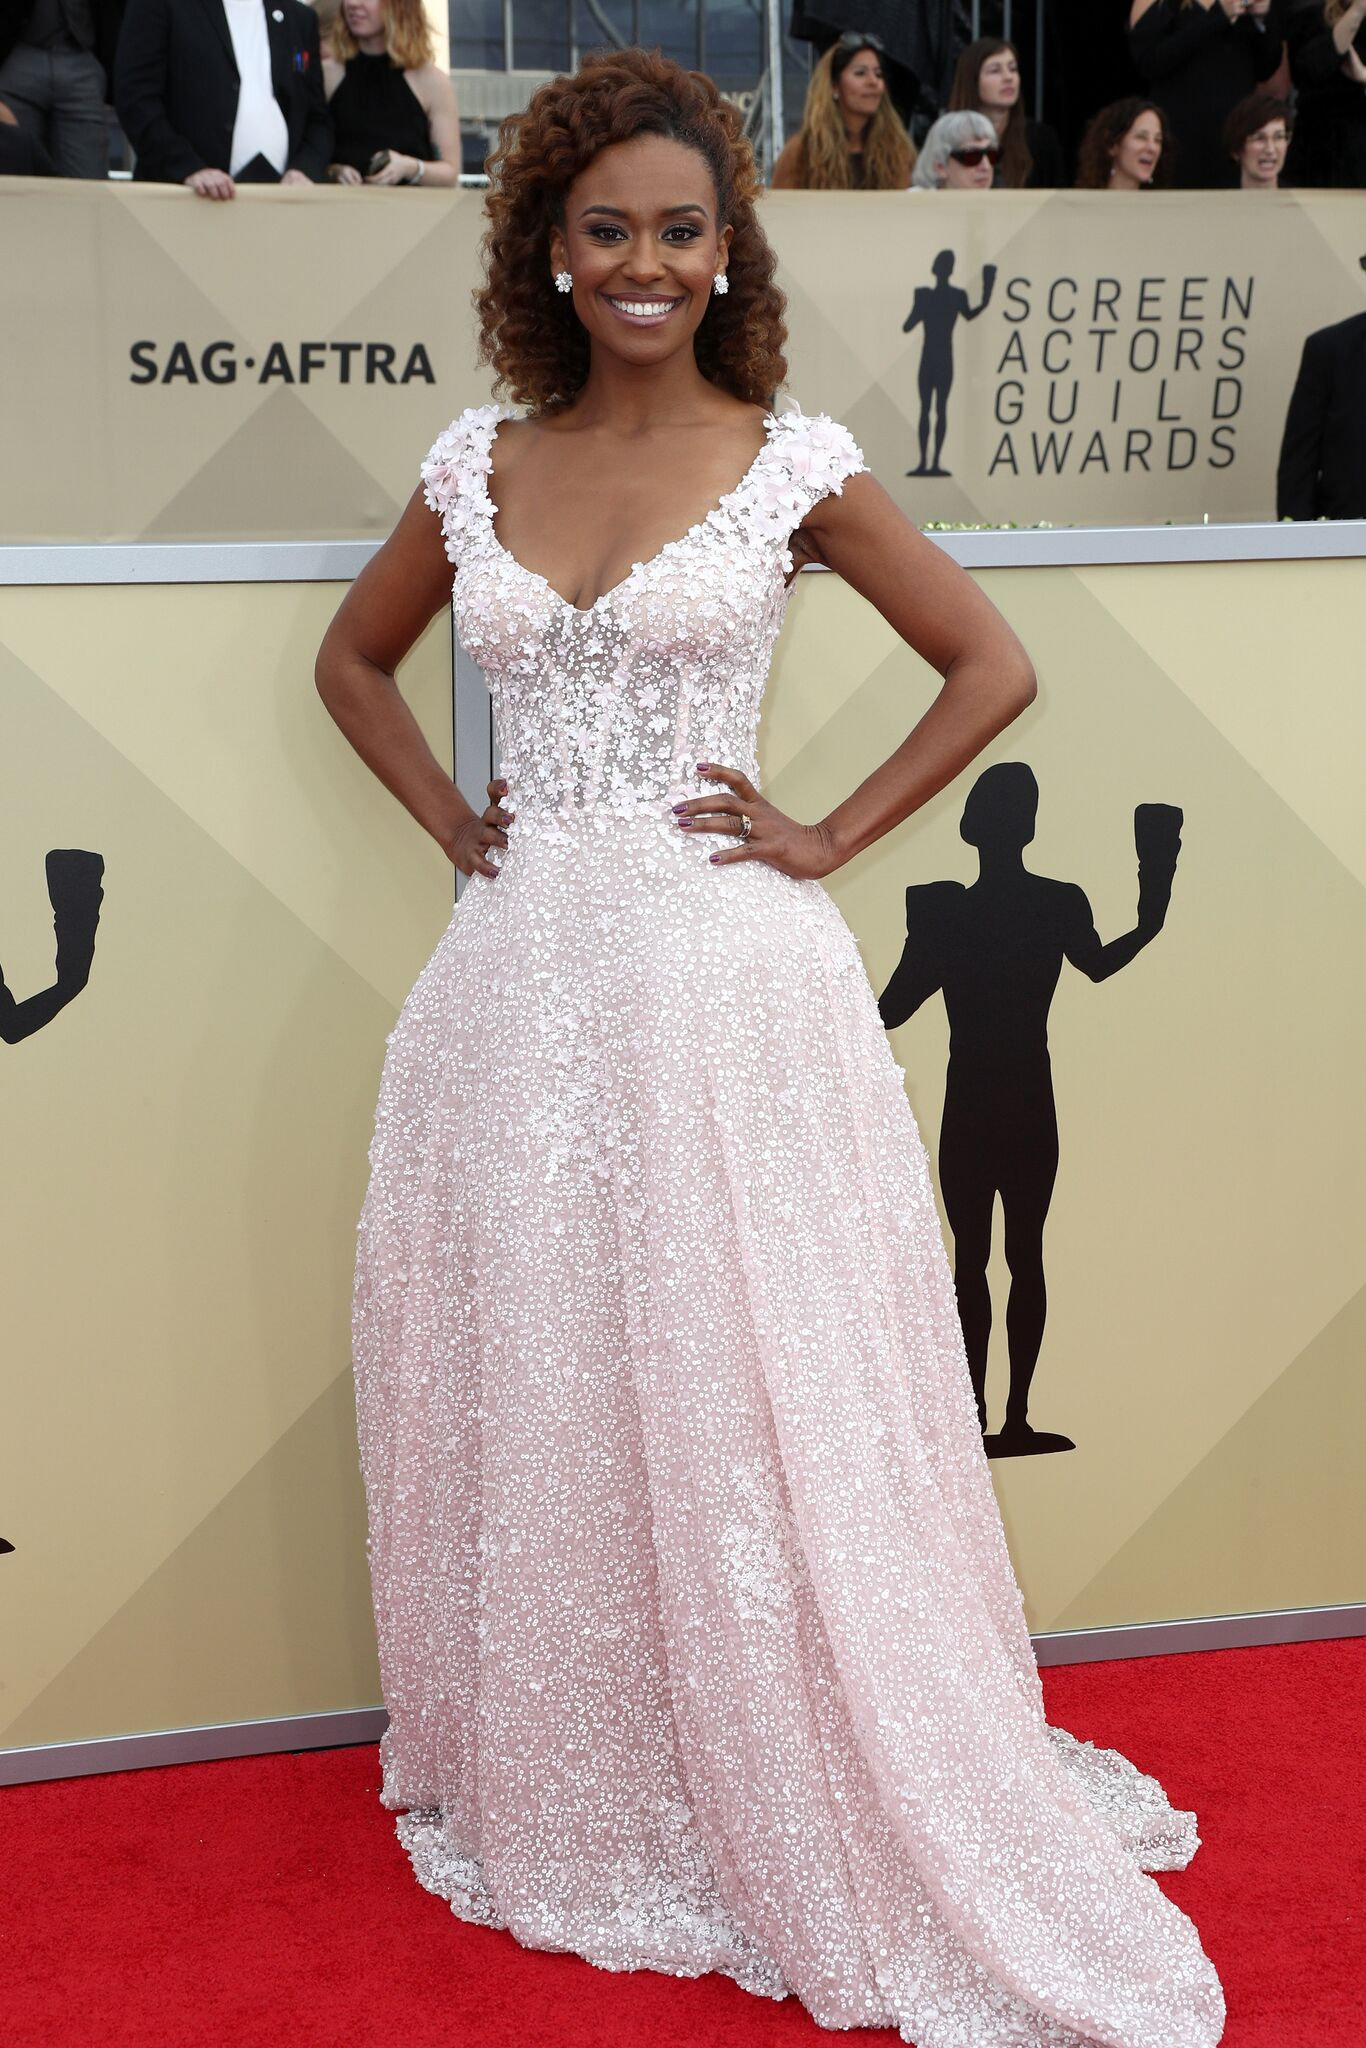 Ryan Michelle Bathe attends the 24th Annual Screen Actors Guild Awards at The Shrine Auditorium | Getty Images